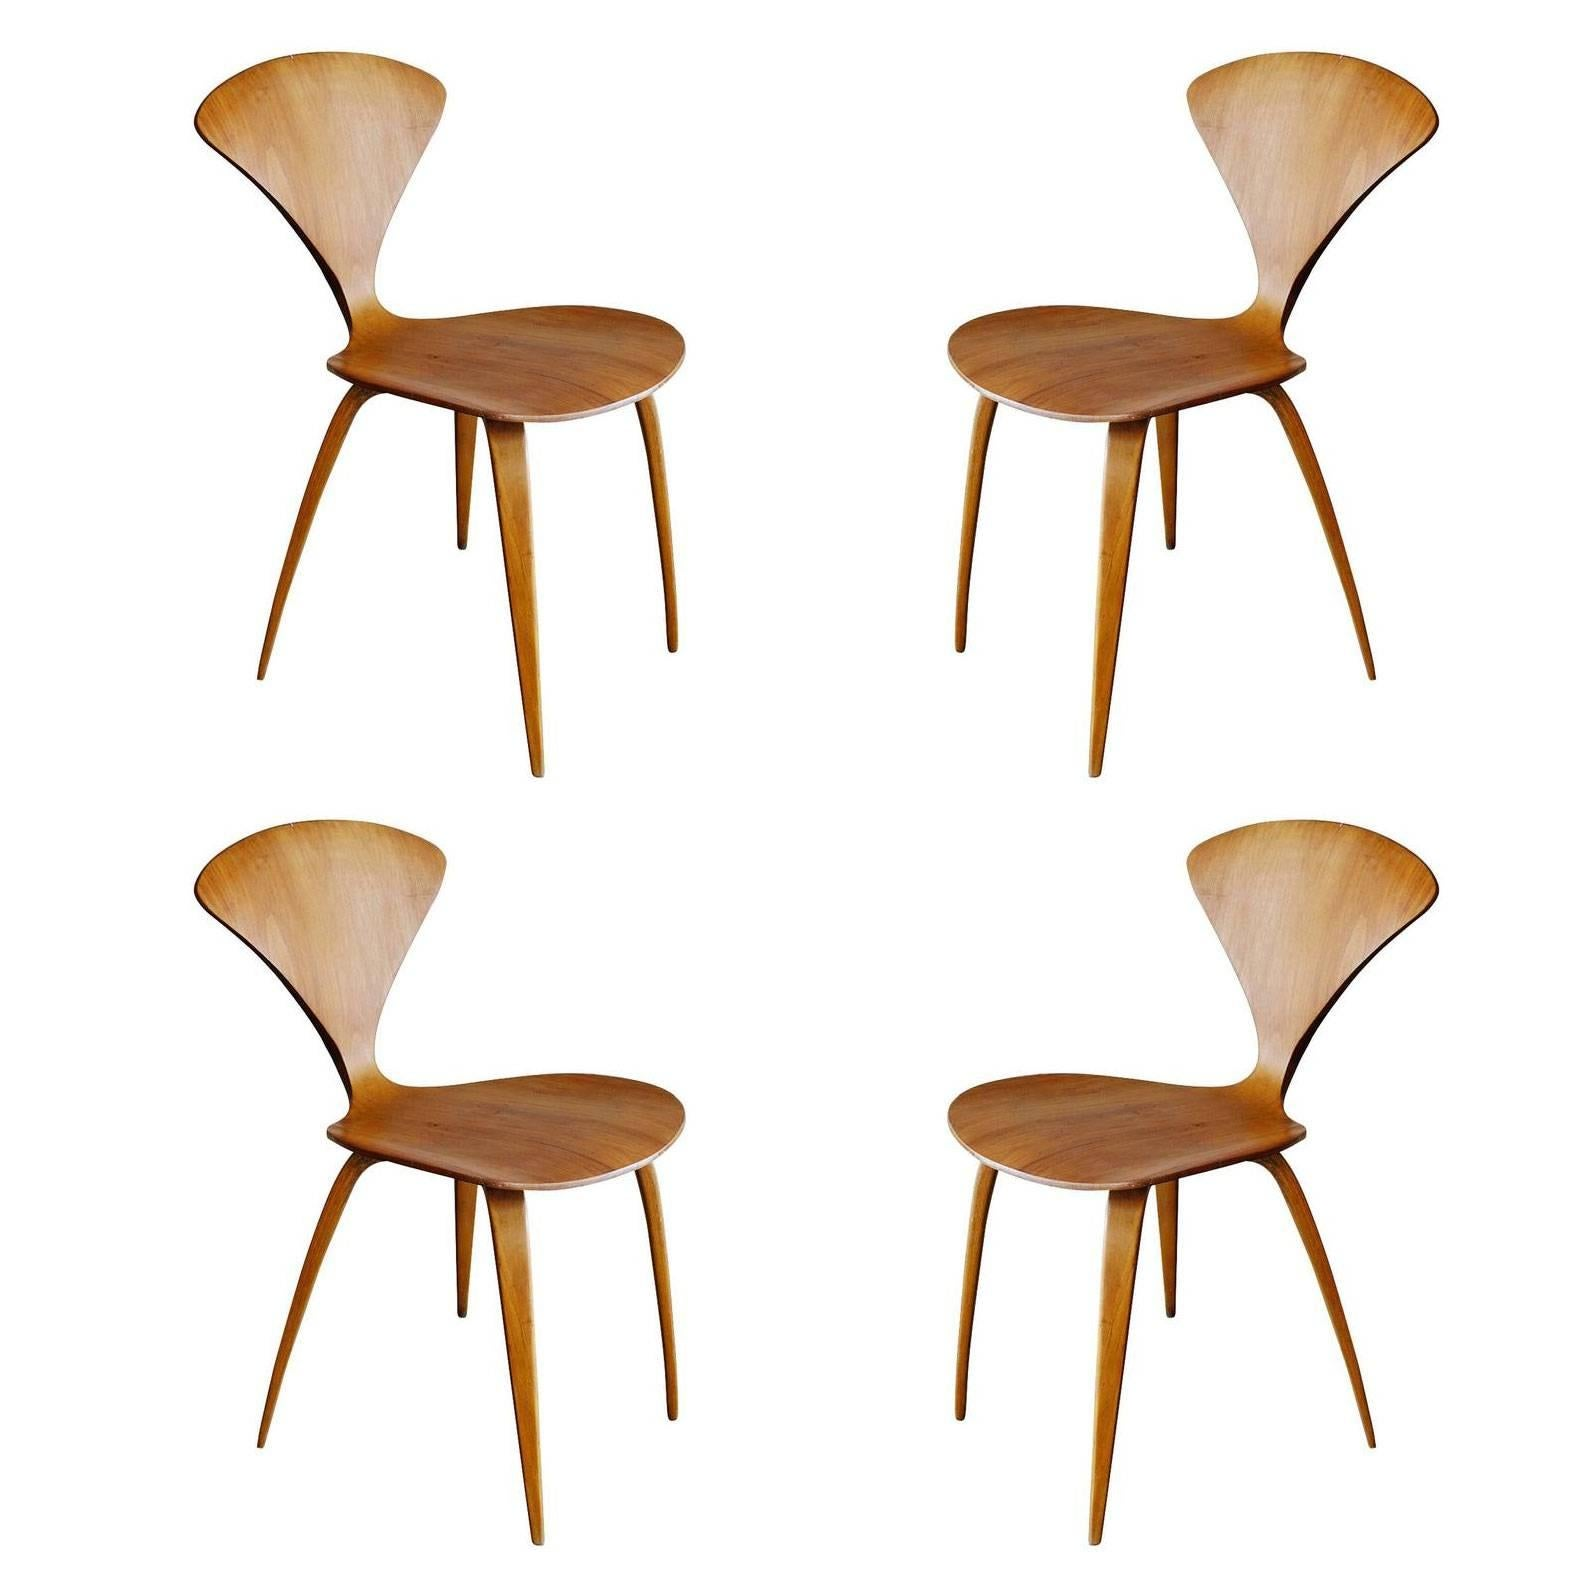 Plycraft Sculptural Dining Chairs By Norman Cherner